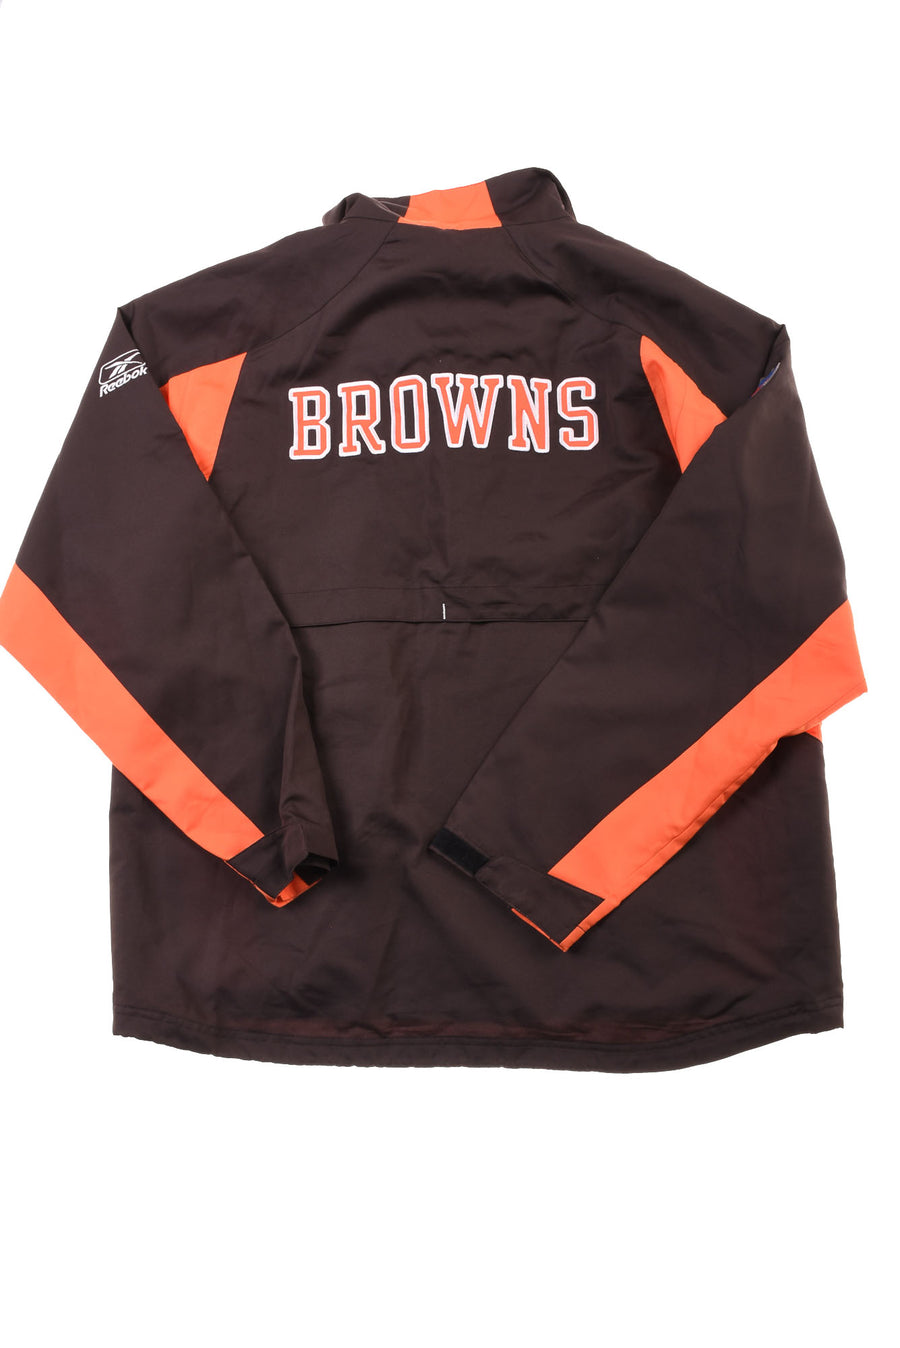 USED Reebok Men's Cleveland Brown's Jacket Large Brown & Orange